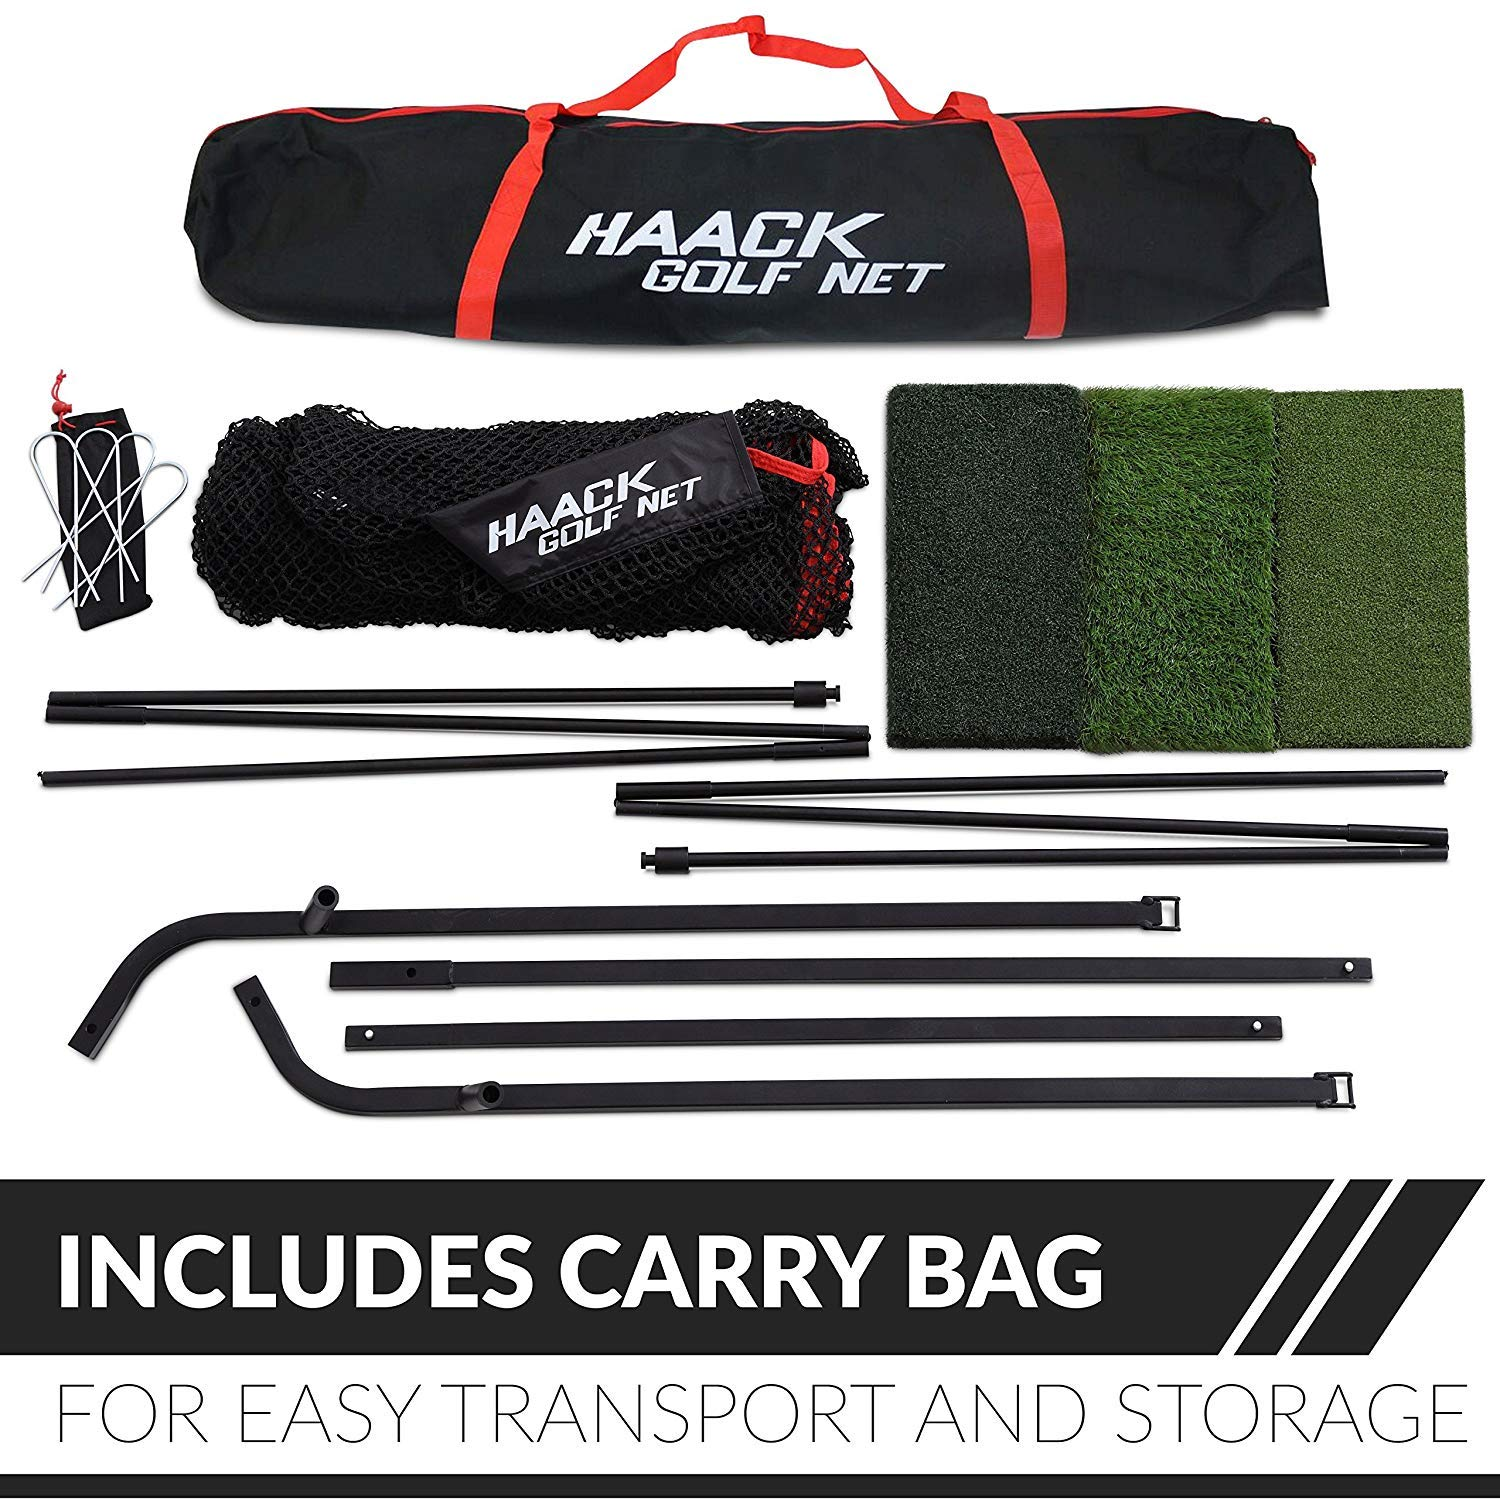 Rukket 3pc Golf Bundle | 10x7ft Haack Golf Net | Tri Turf Hitting Mat | Carry Bag | Practice Driving Indoor and Outdoor | Golfing at Home Swing Training Aids | by SEC Coach Chris Haack by Rukket Sports (Image #6)